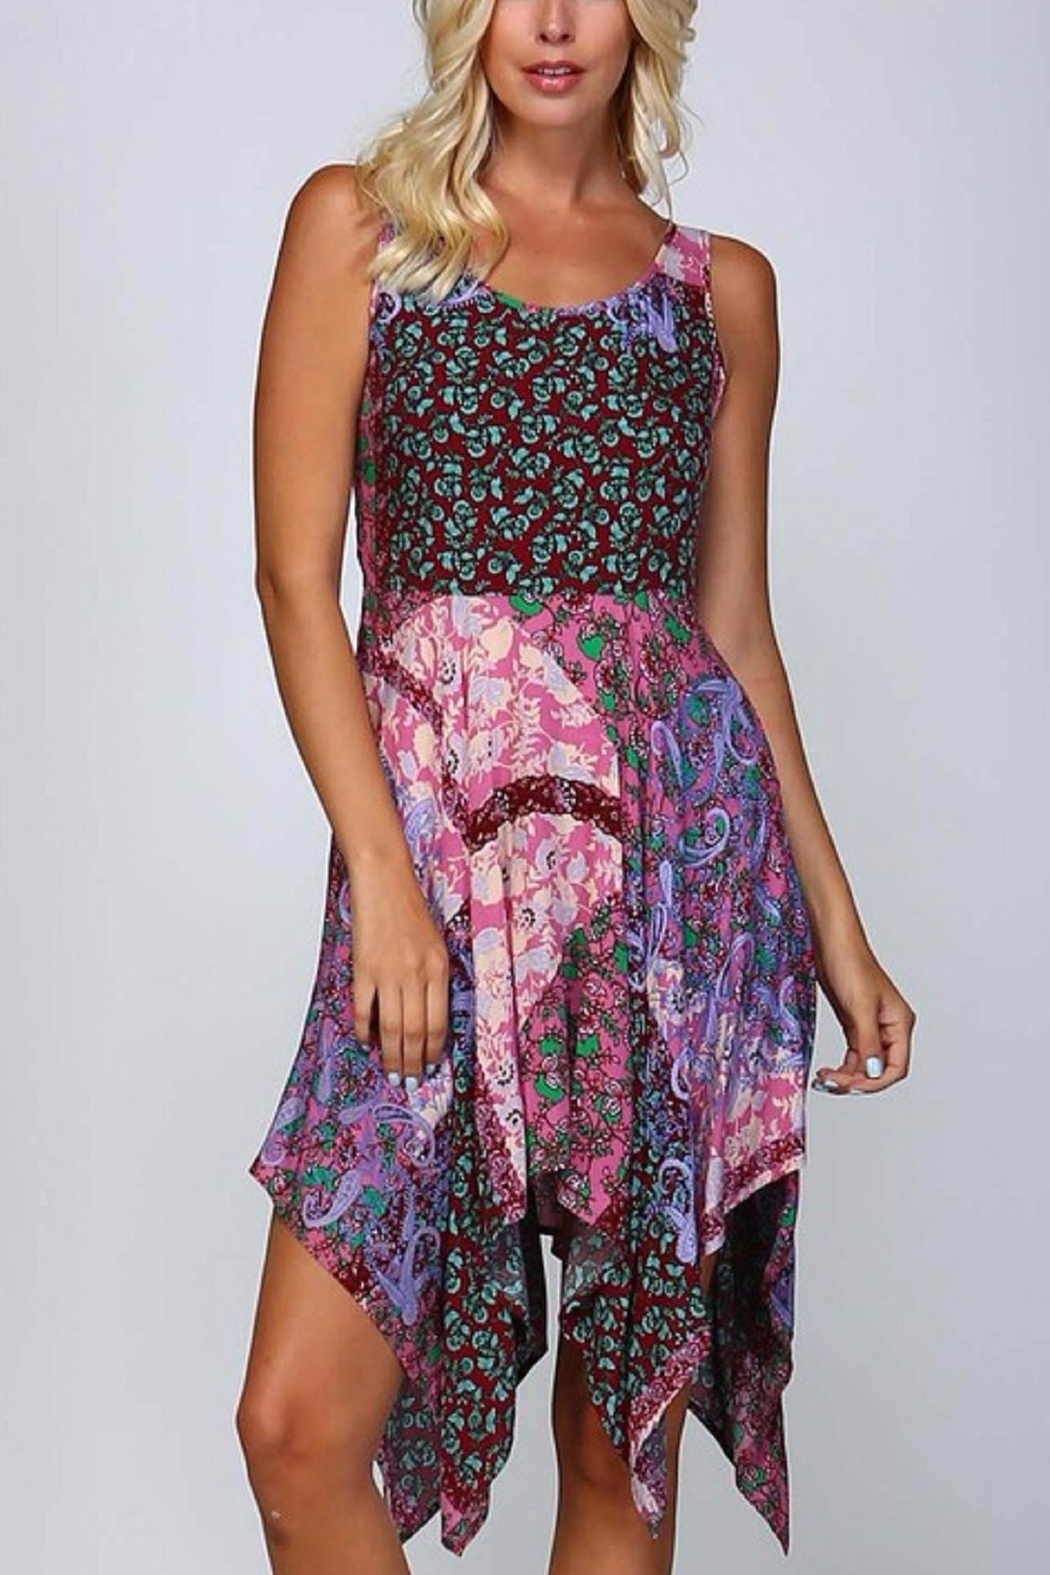 Listicle Print Waterfall Dress from Texas by Erica Rose